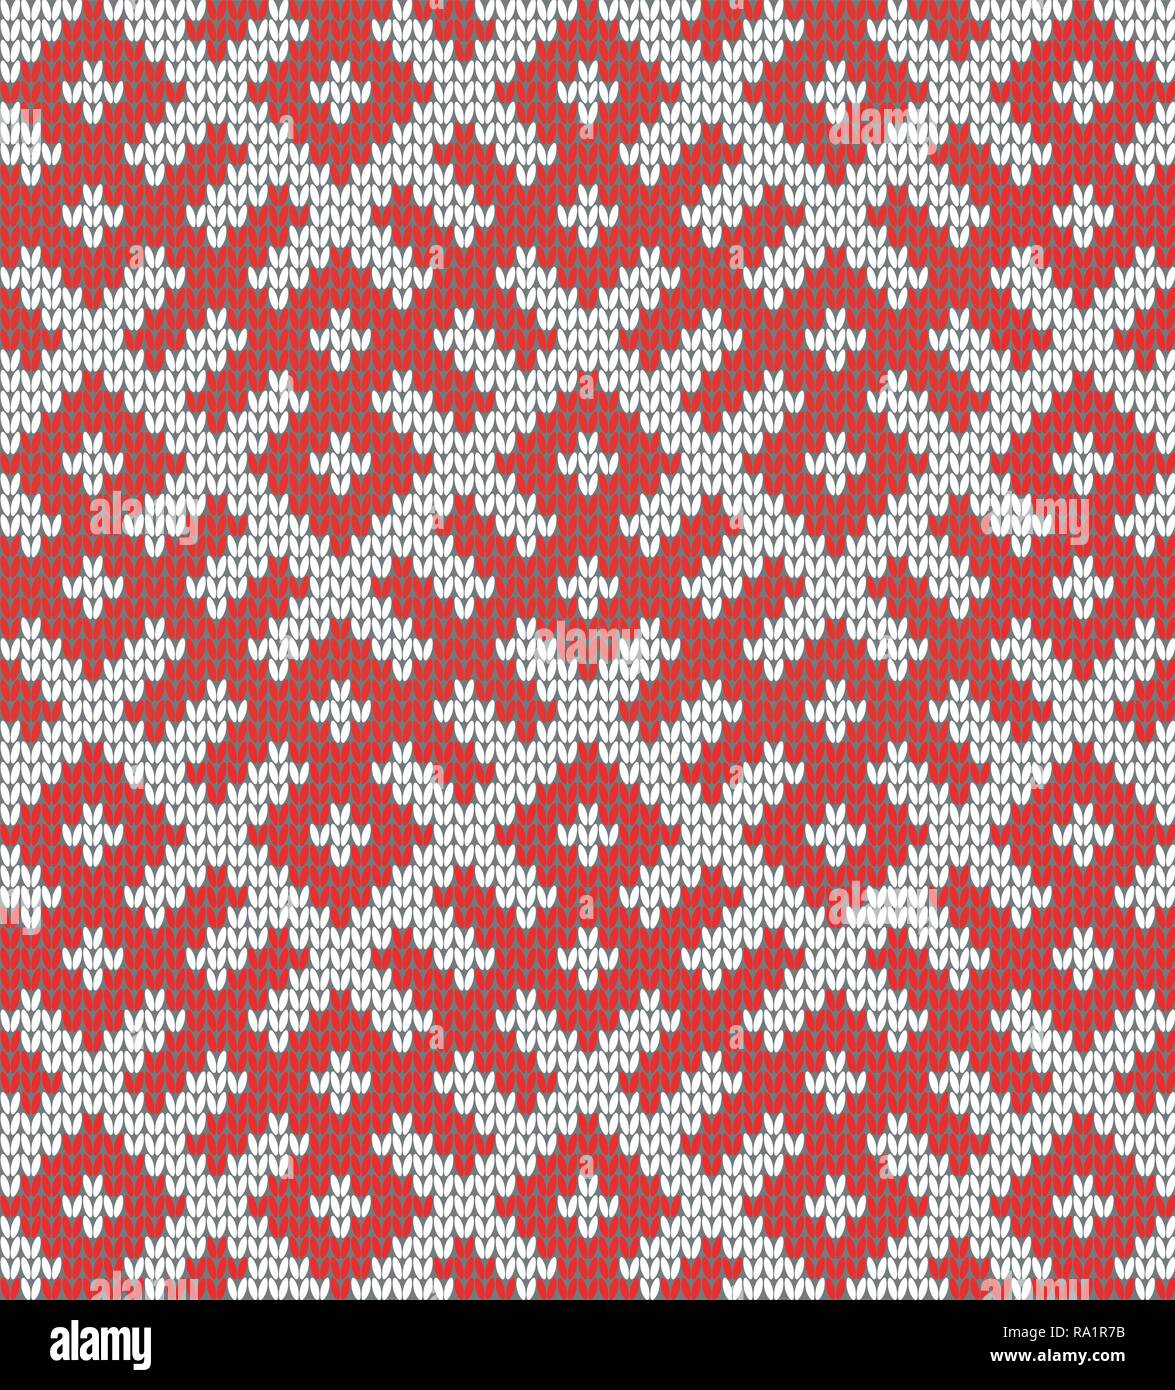 Seamless Knitting Pattern.Based on traditional Russian ornament.Red and white.Wool Knit Texture Imitation.DISABLING LAYERS, you can obtain seamless pa Stock Vector